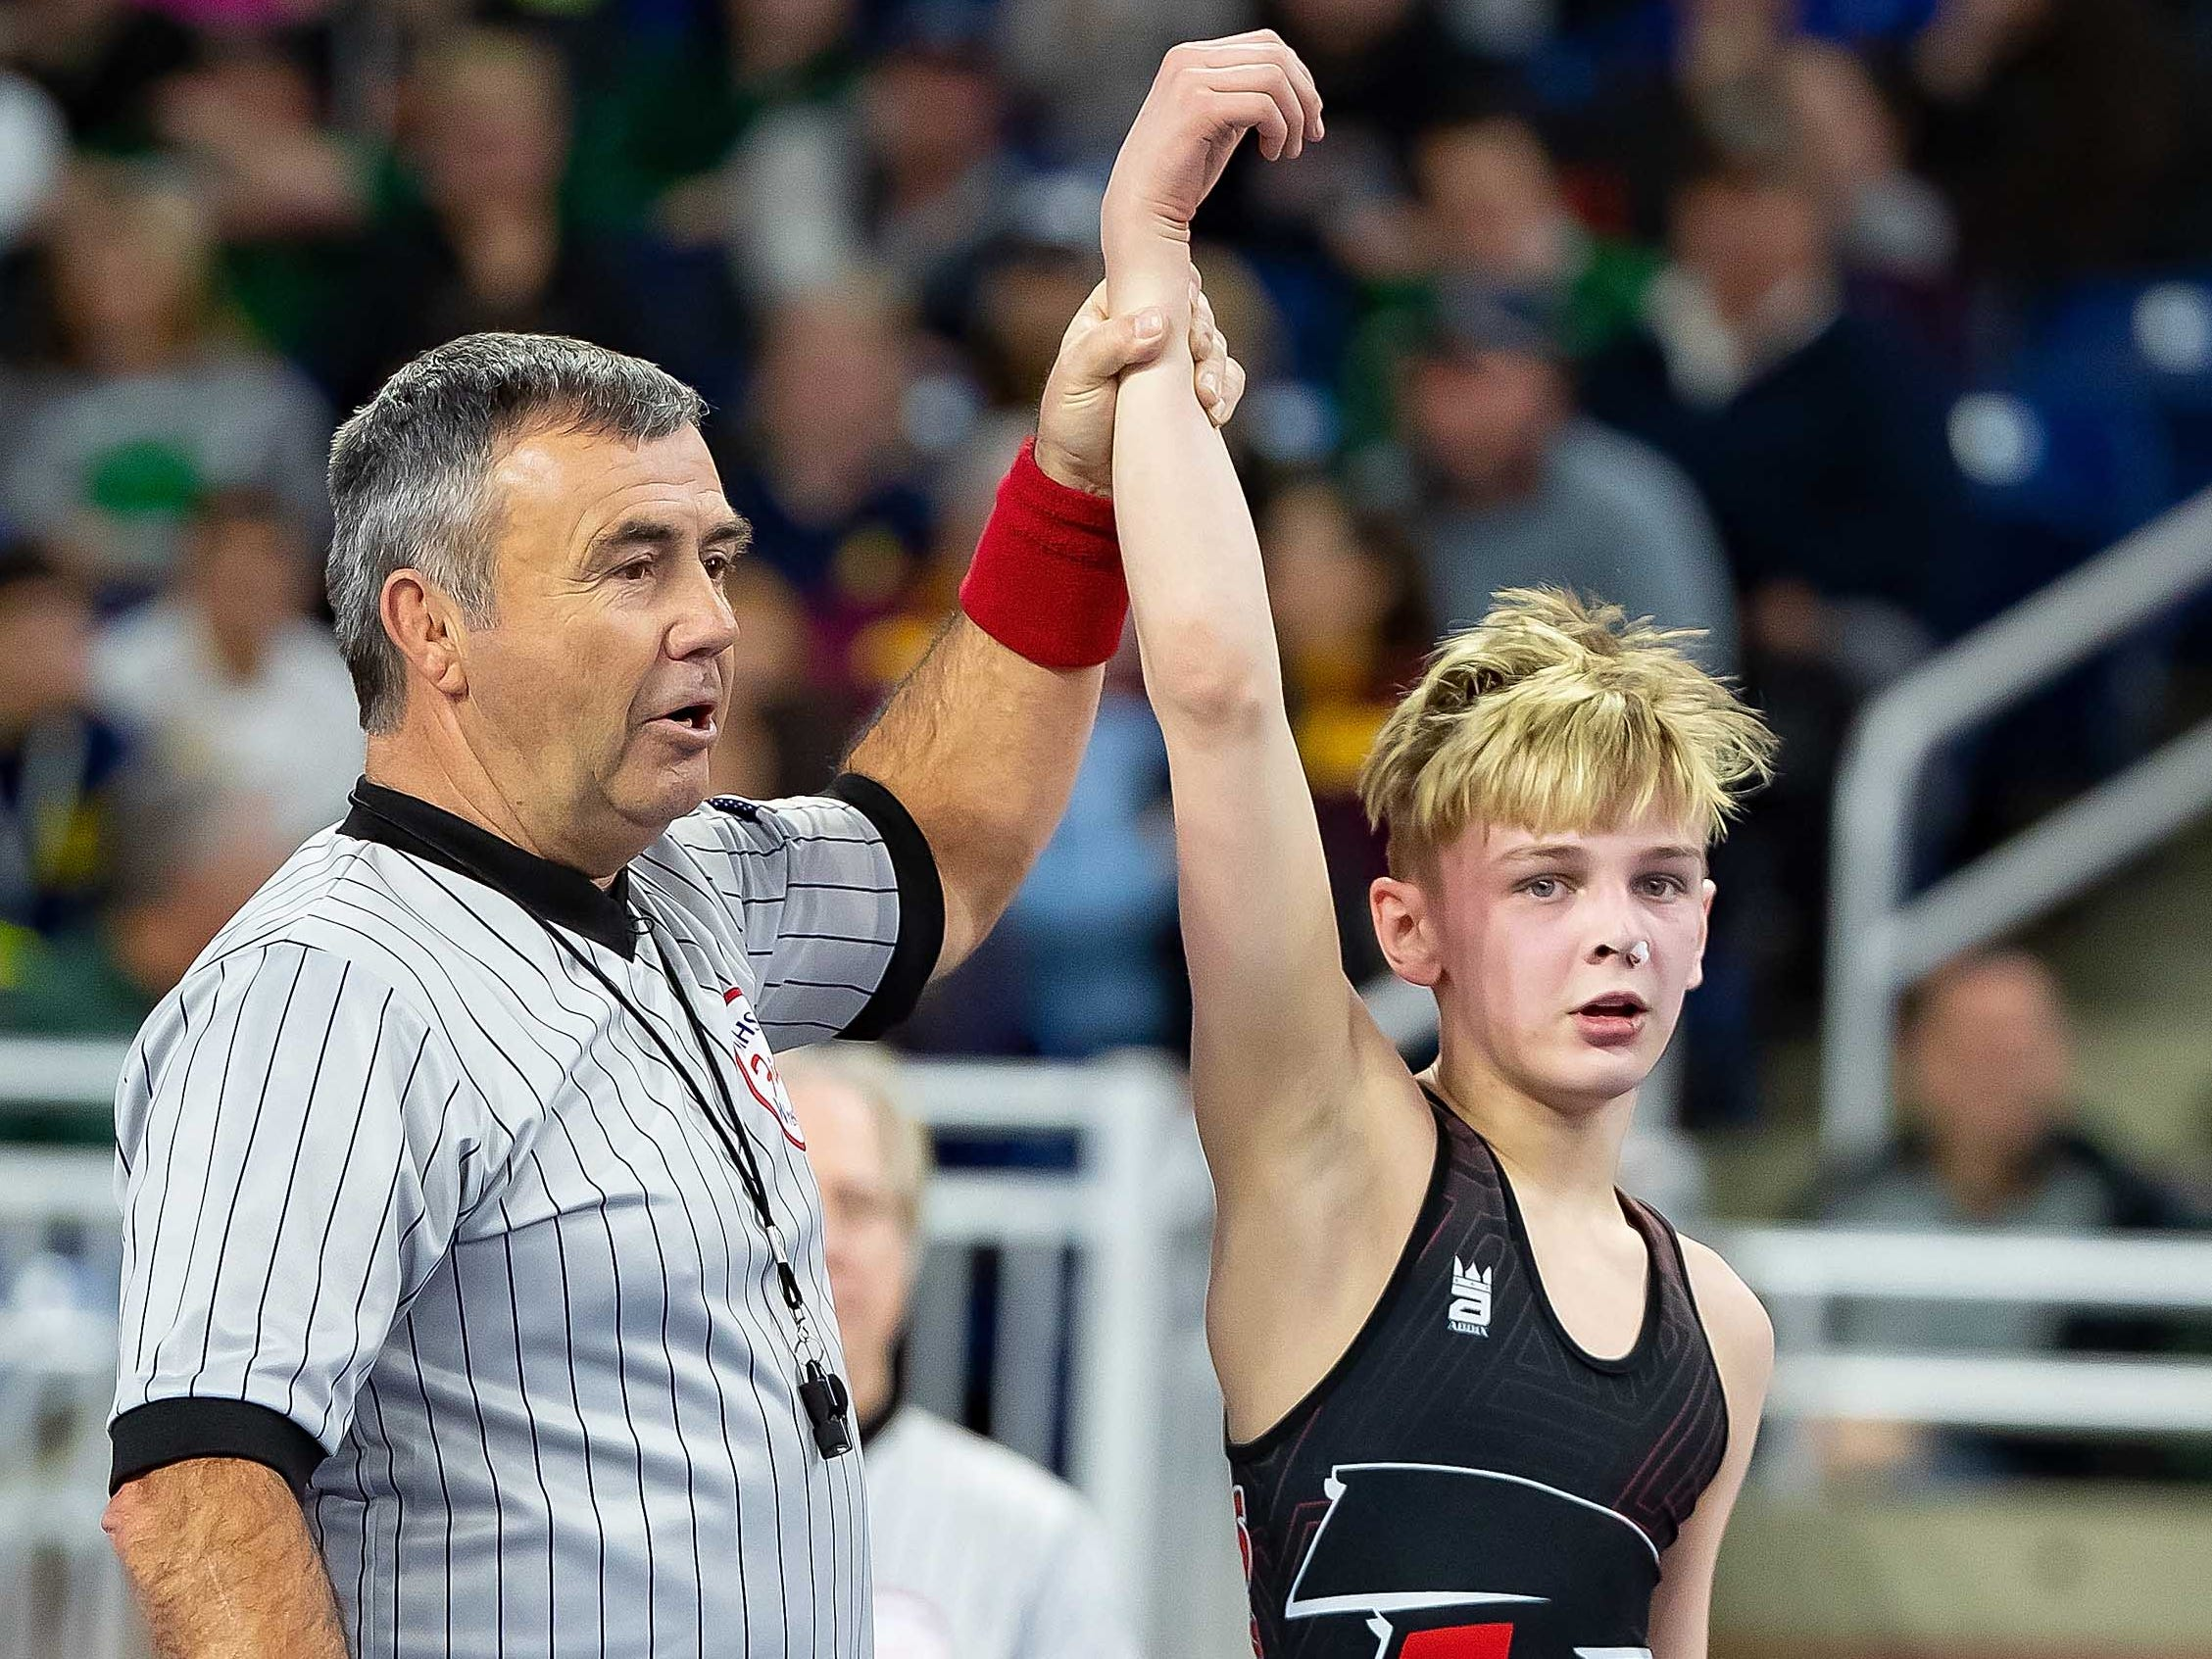 Jamison Zimmerman of Niles raises his arm in victory after defeating  Jacob Brya of St. Johns during their 103-pound Division 2 championship match.